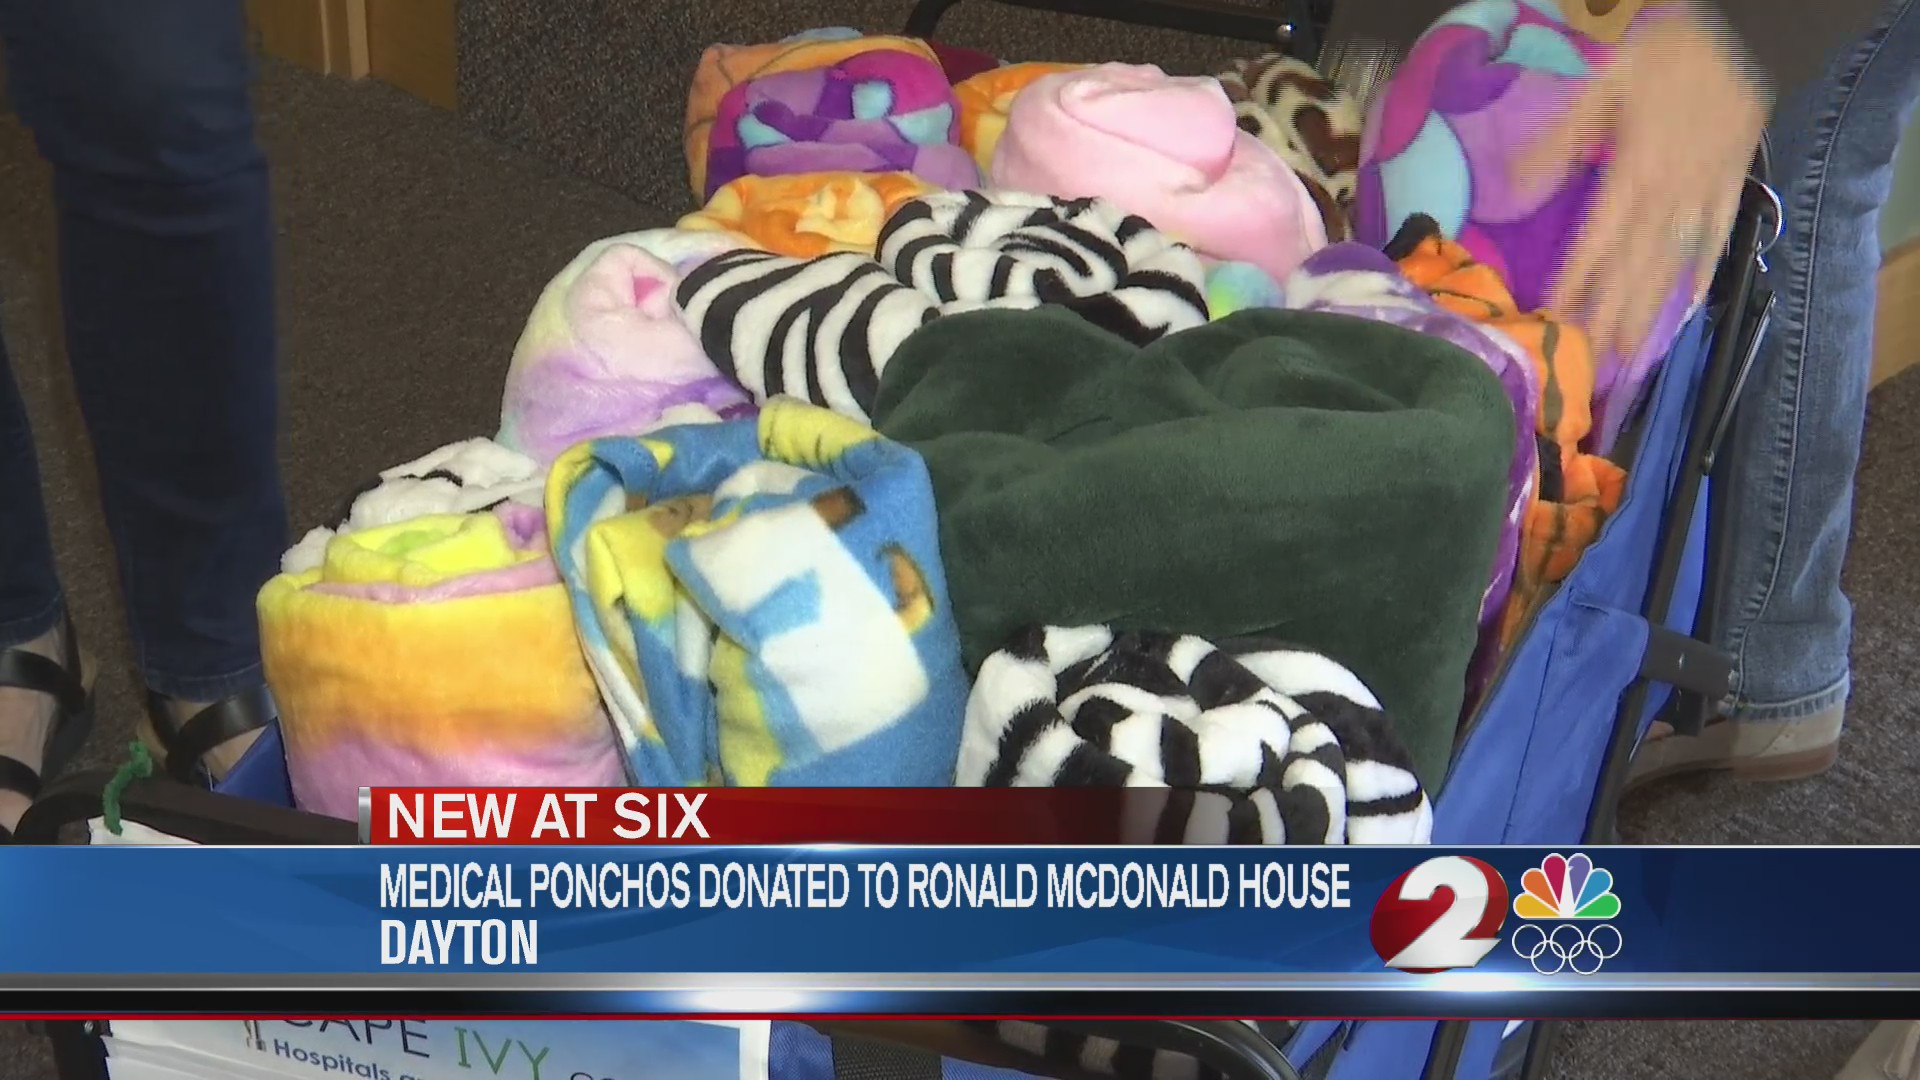 Medical ponchos donated to Ronald McDonald House